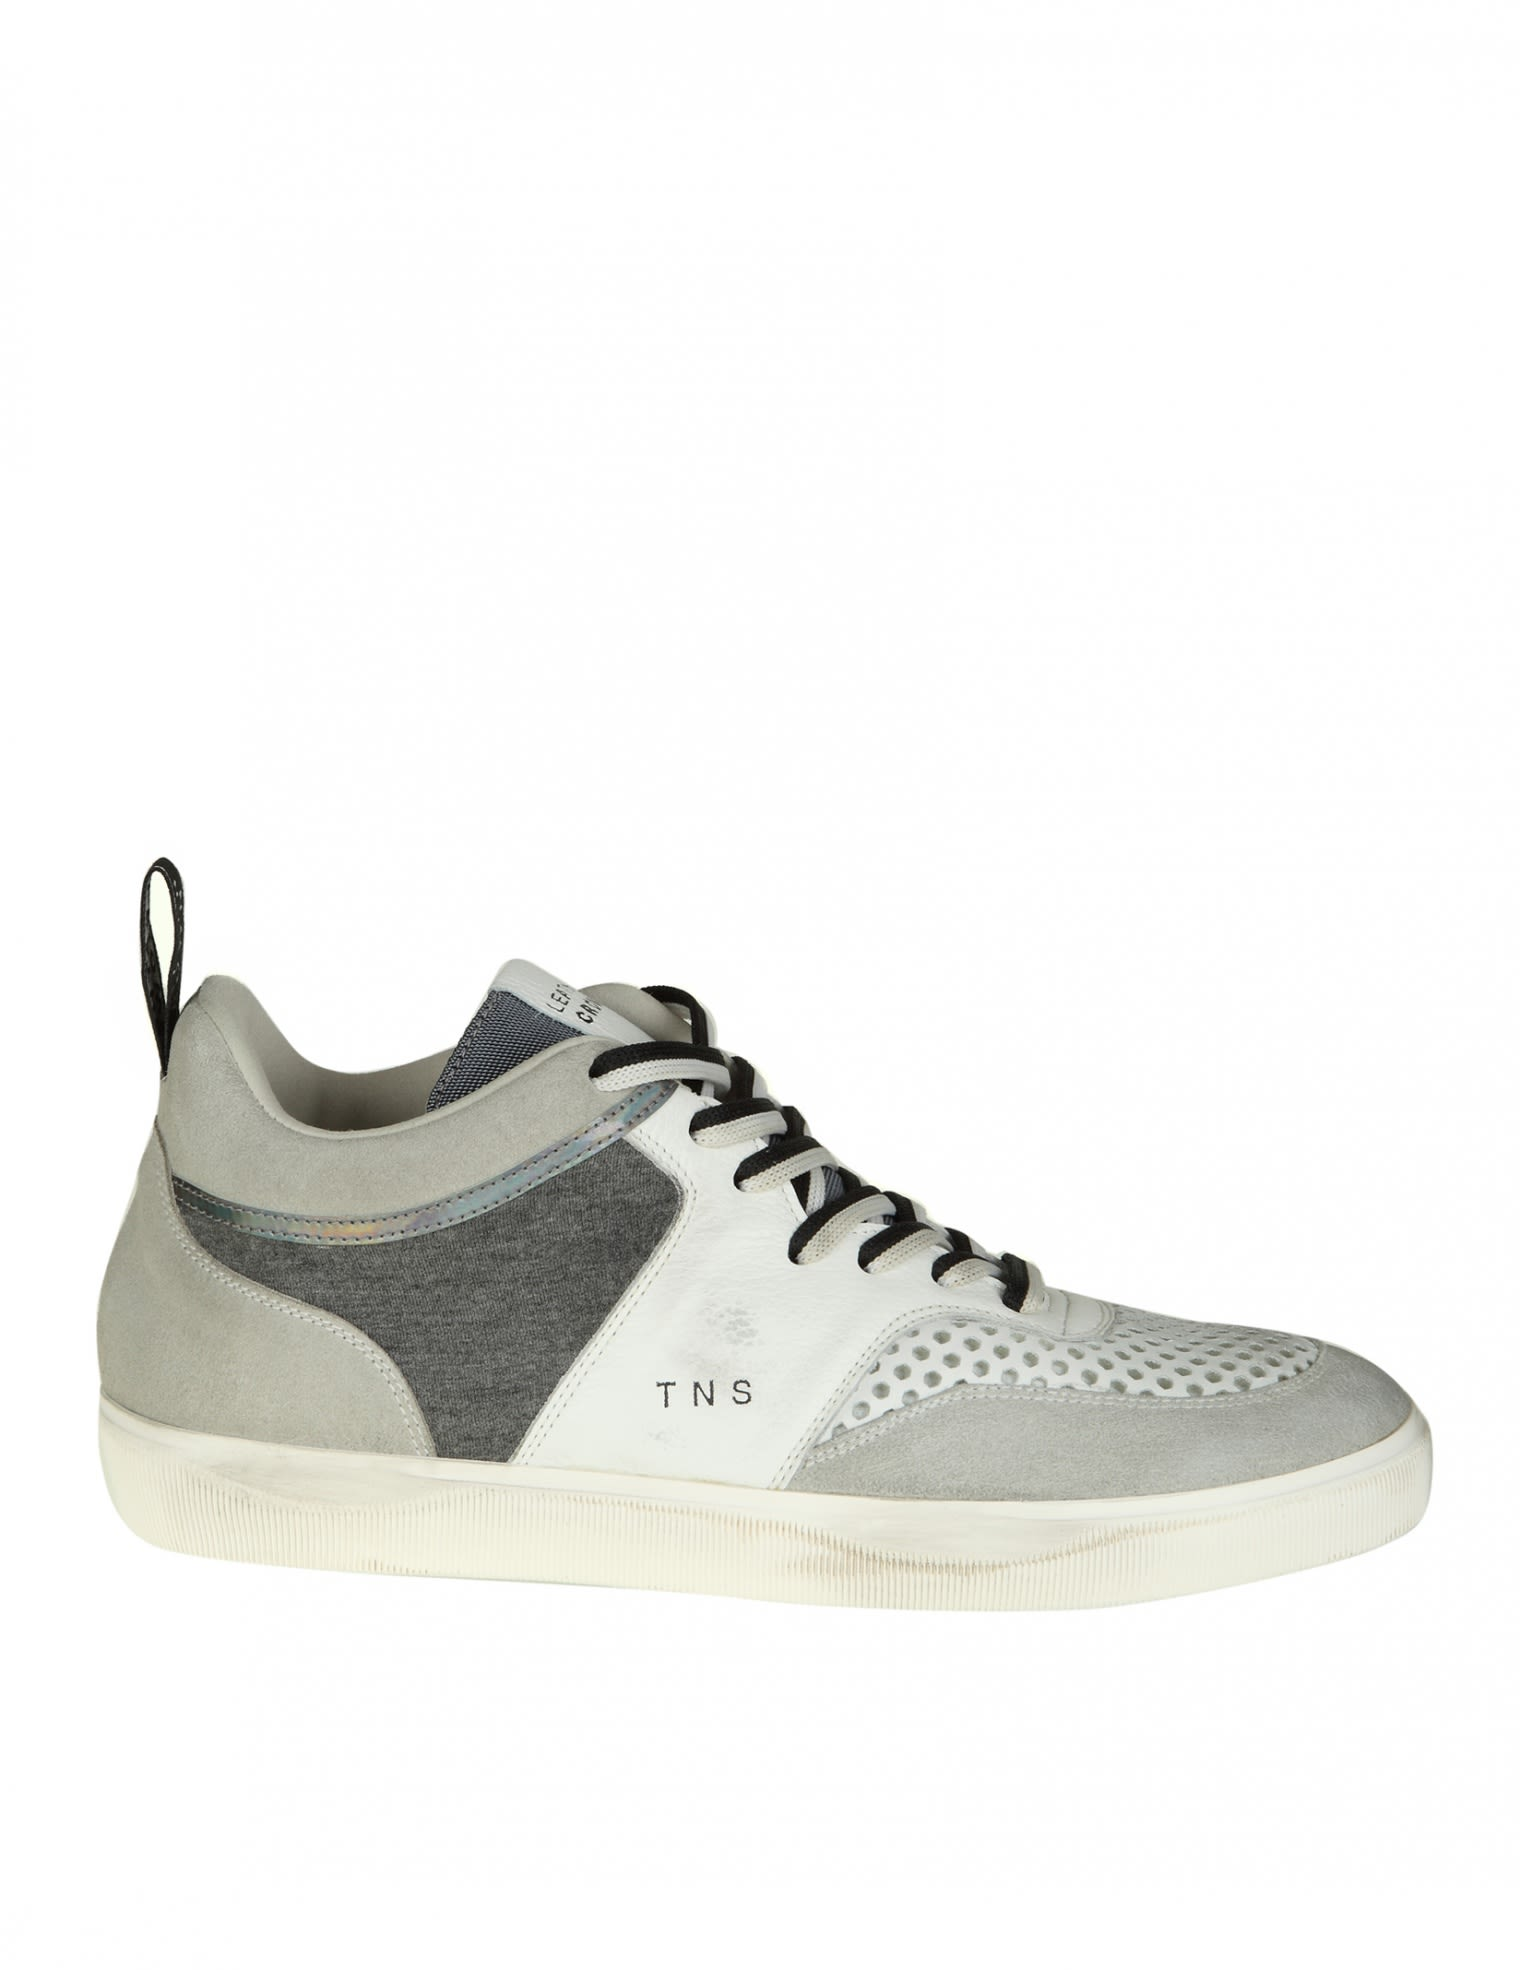 Leather Crown Leathers SNEAKERS IN LEATHER COLOR WHITE AND GRAY